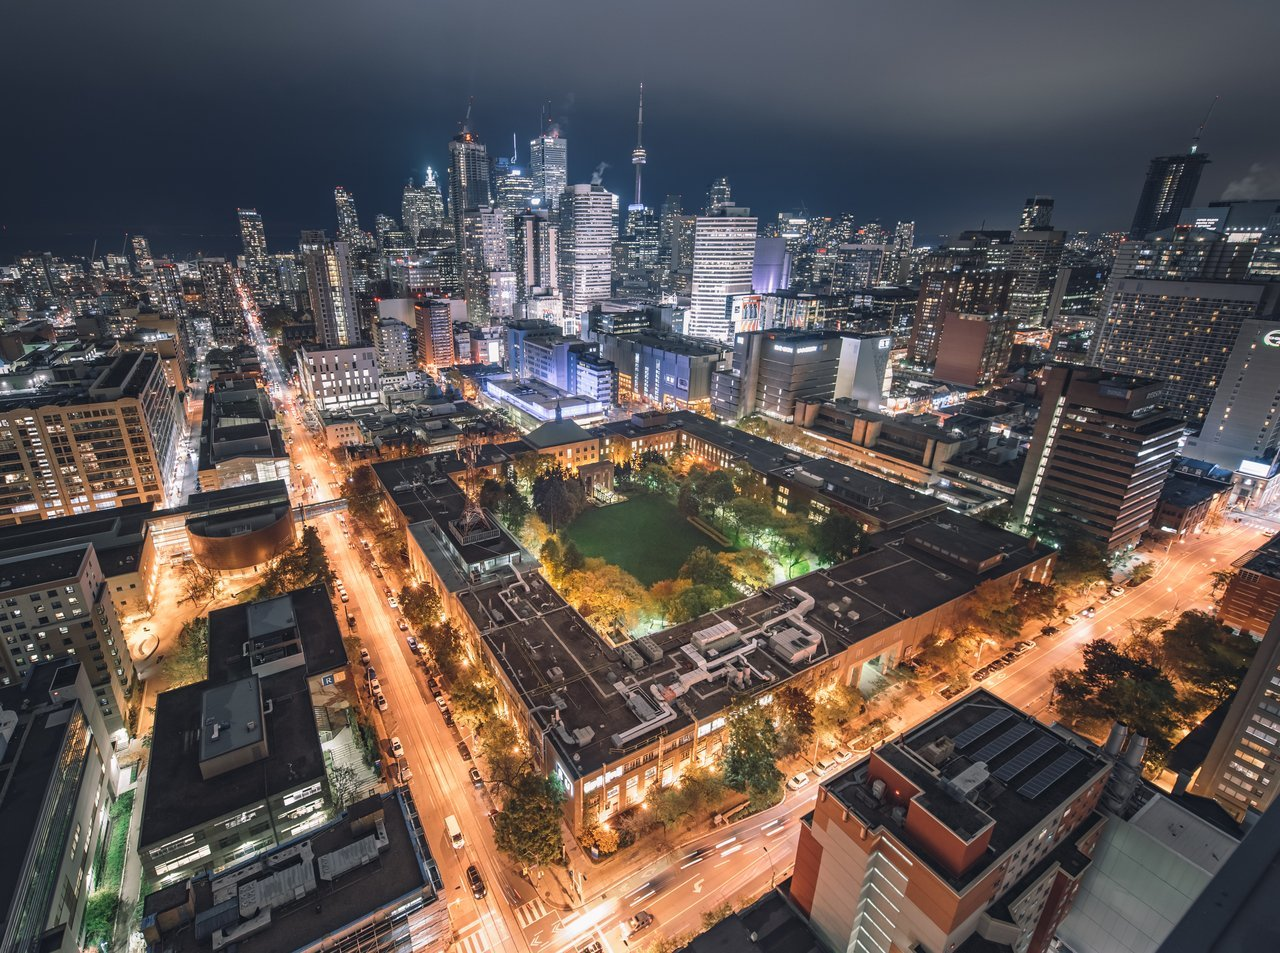 Ryerson Quad Aerial View at night